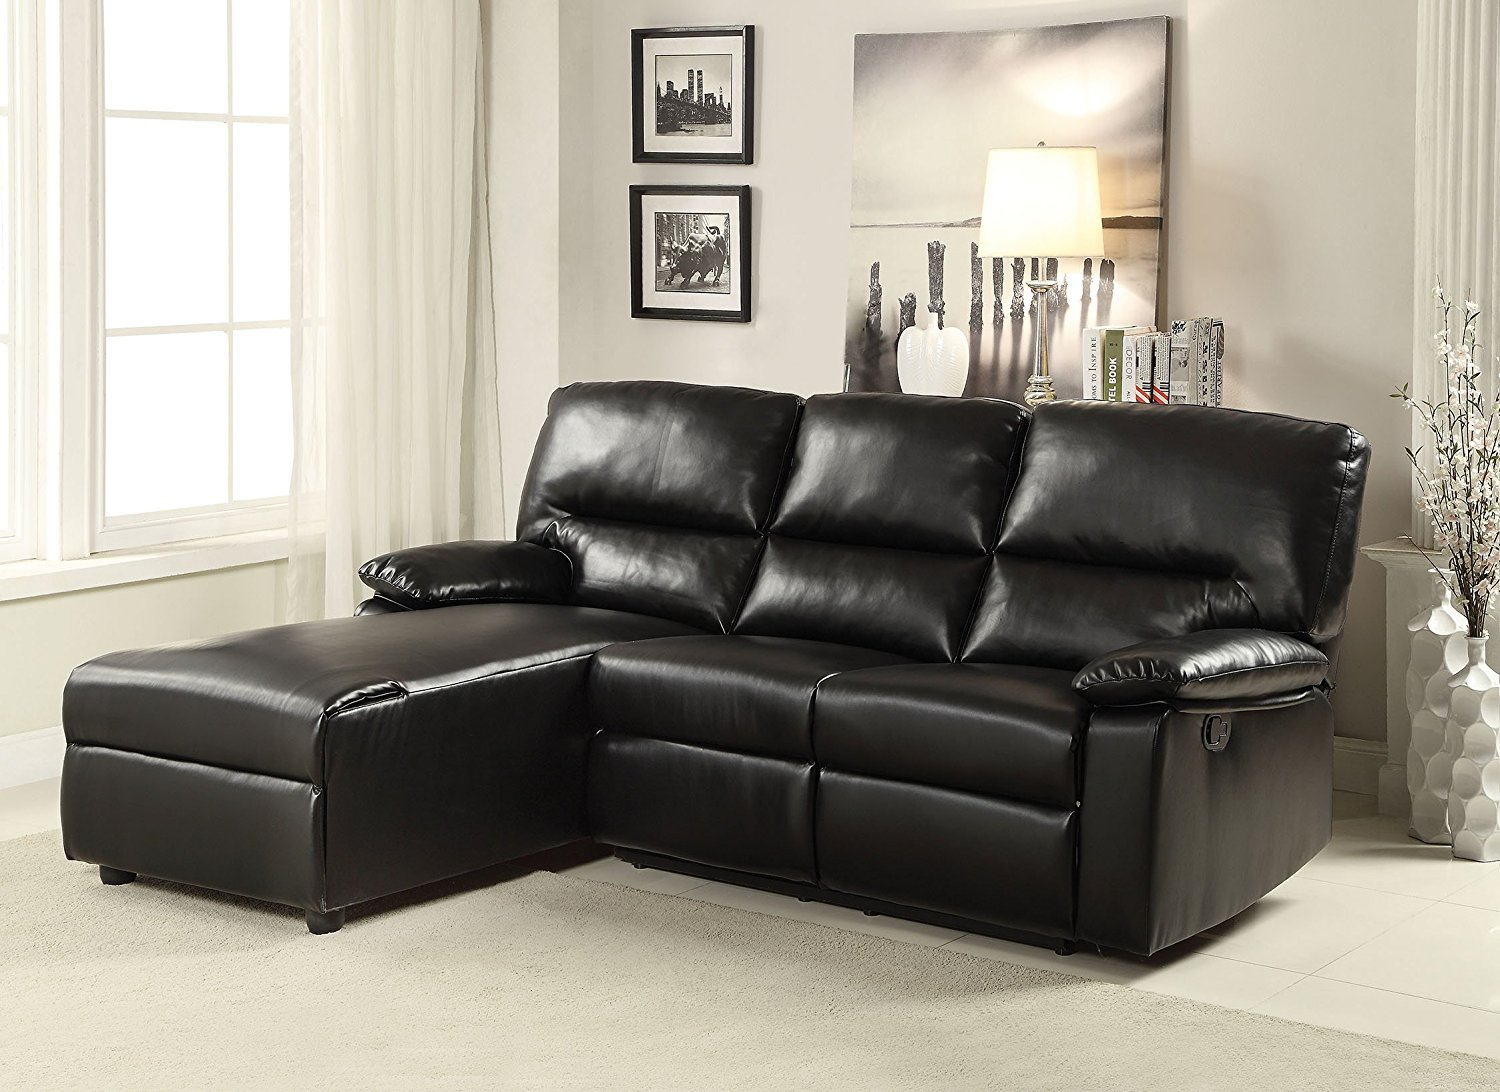 Leather Motion Sectional Sofa Home Decor 88